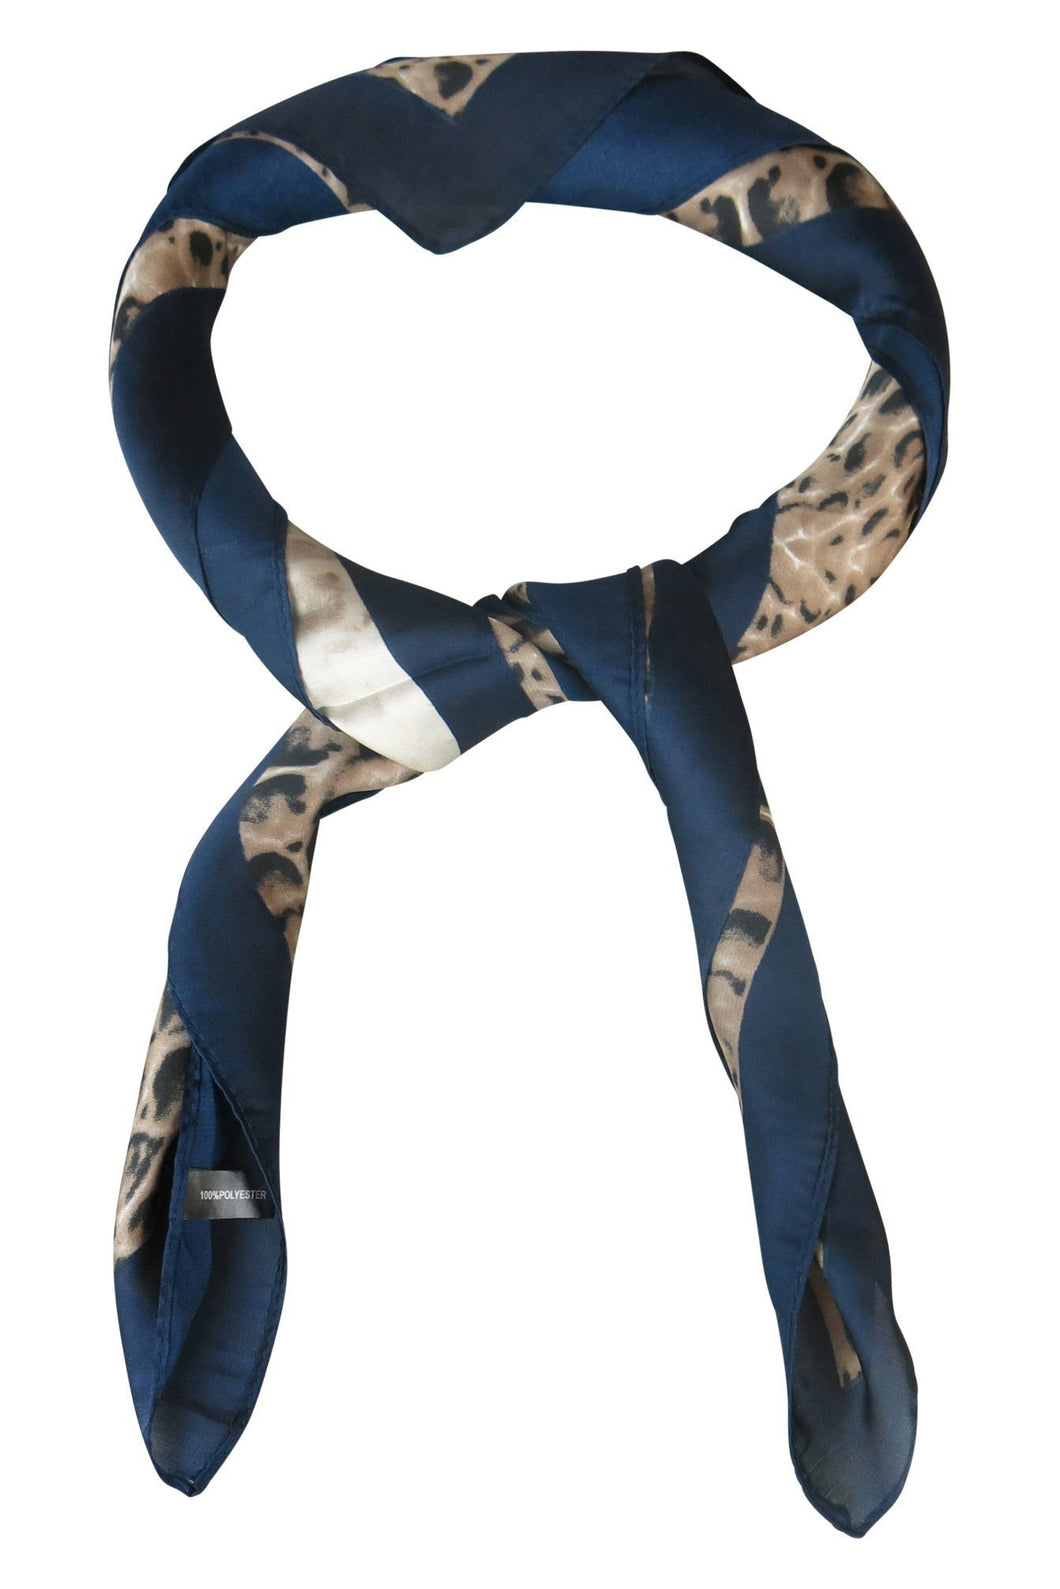 Morgan & Taylor Julie Scarf Navy - Global Free Style